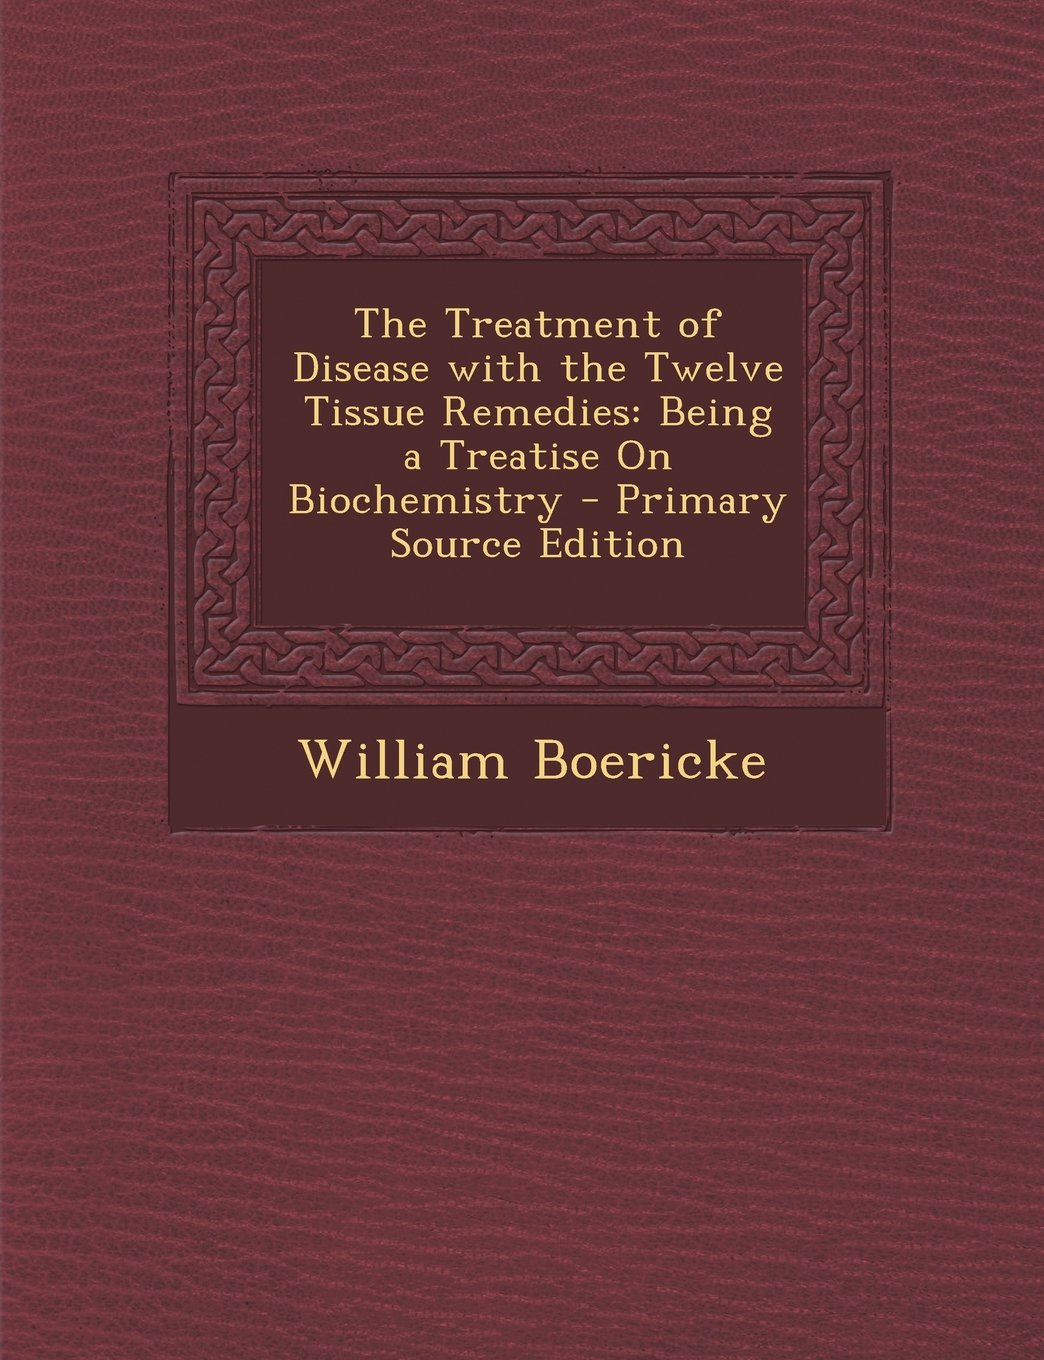 Read Online The Treatment of Disease with the Twelve Tissue Remedies: Being a Treatise on Biochemistry - Primary Source Edition pdf